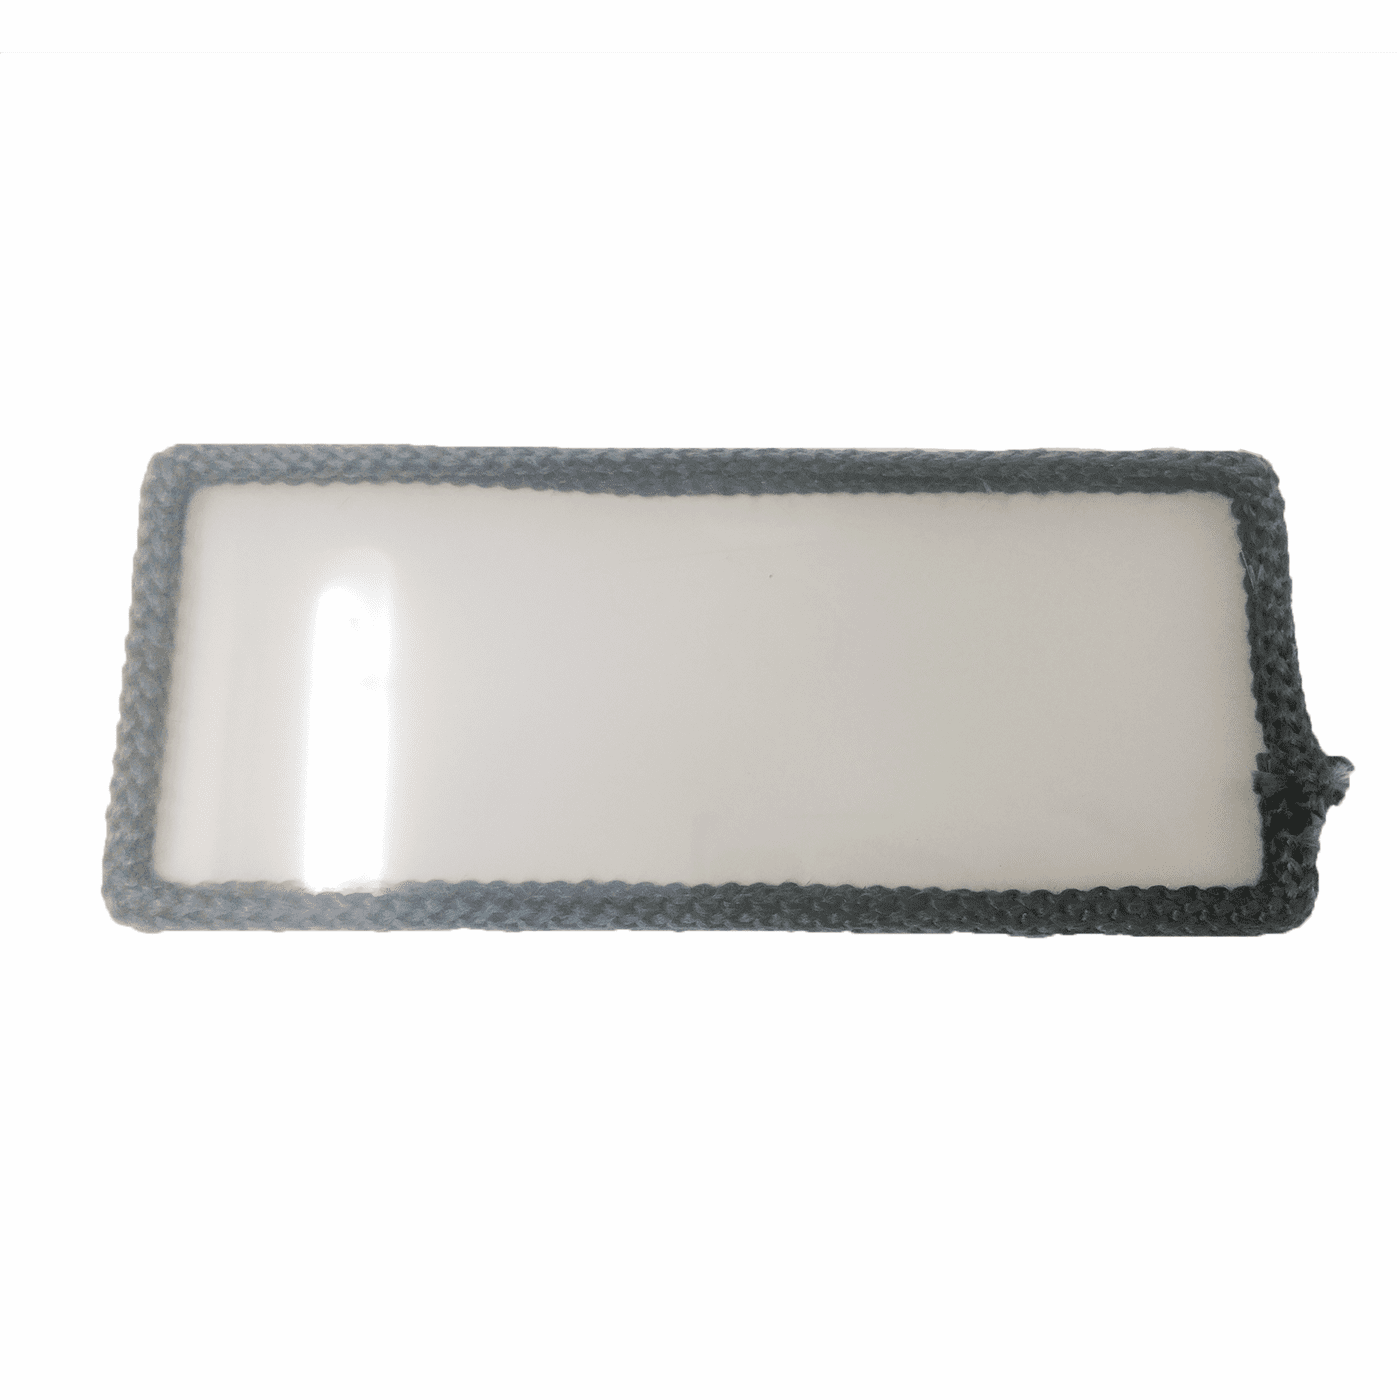 H0258 | Whitfield Side Glass With Gasket, H0258